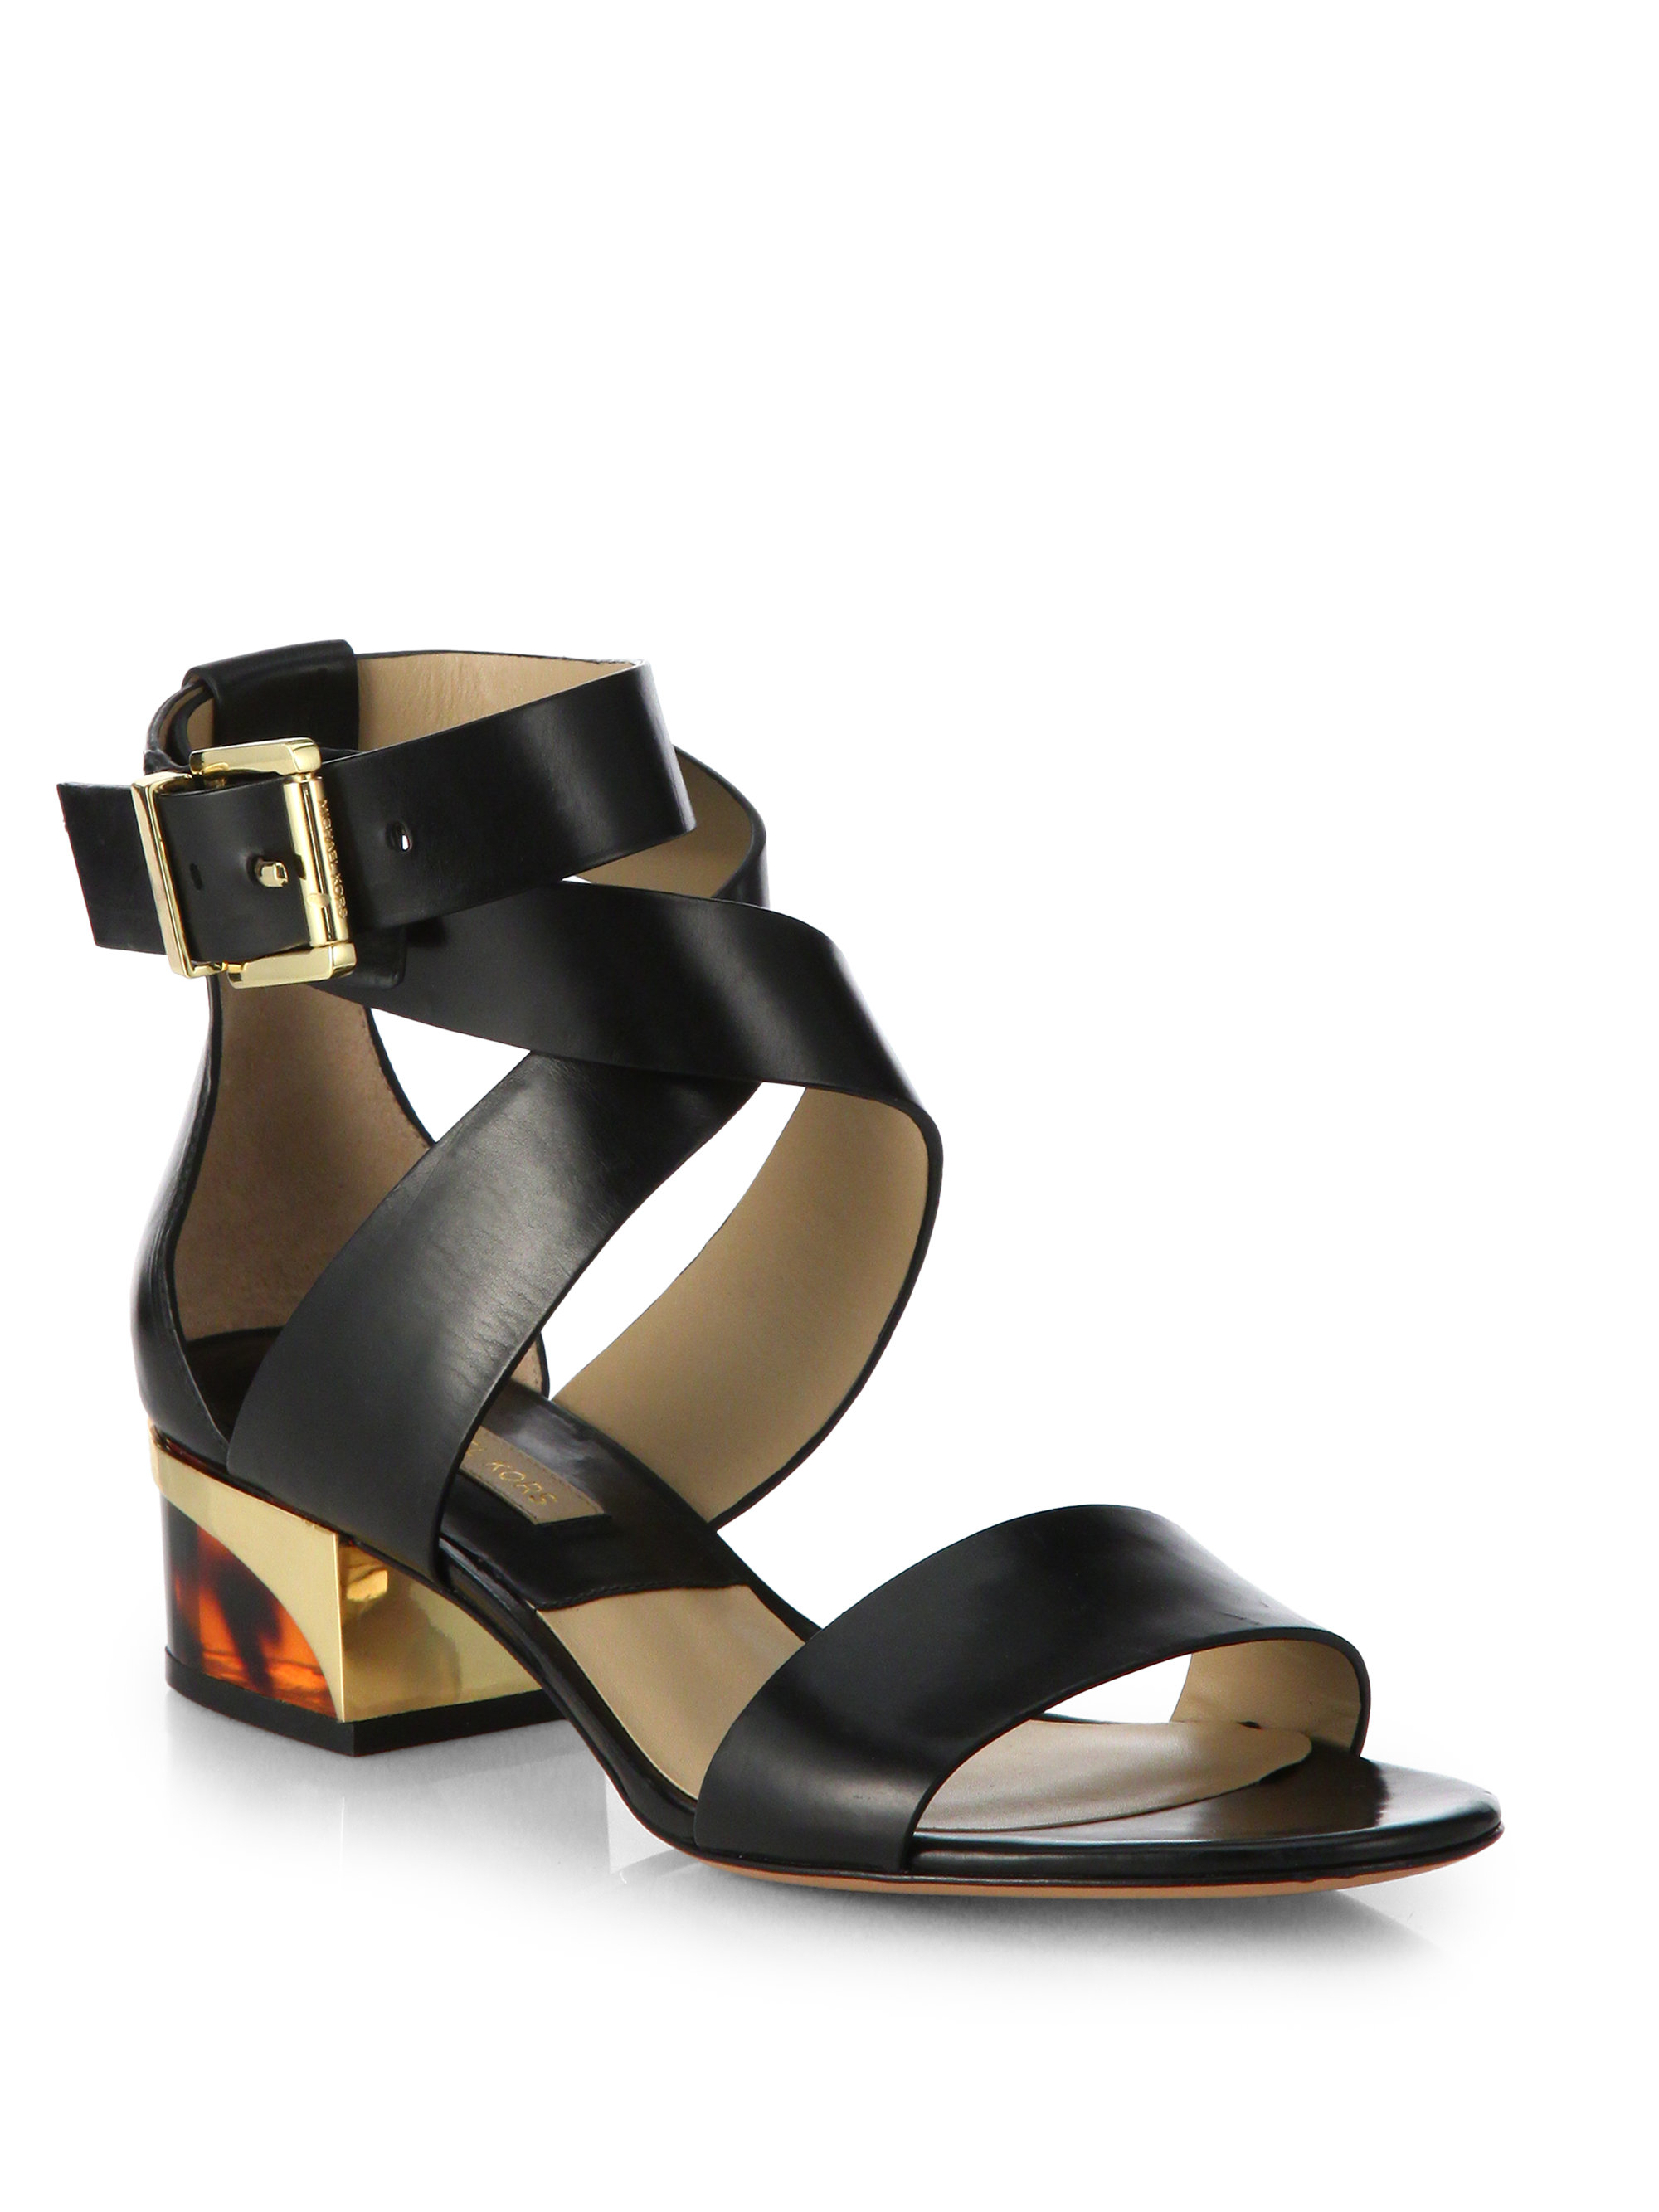 Michael Kors Tulia Leather Sandals in Black | Lyst